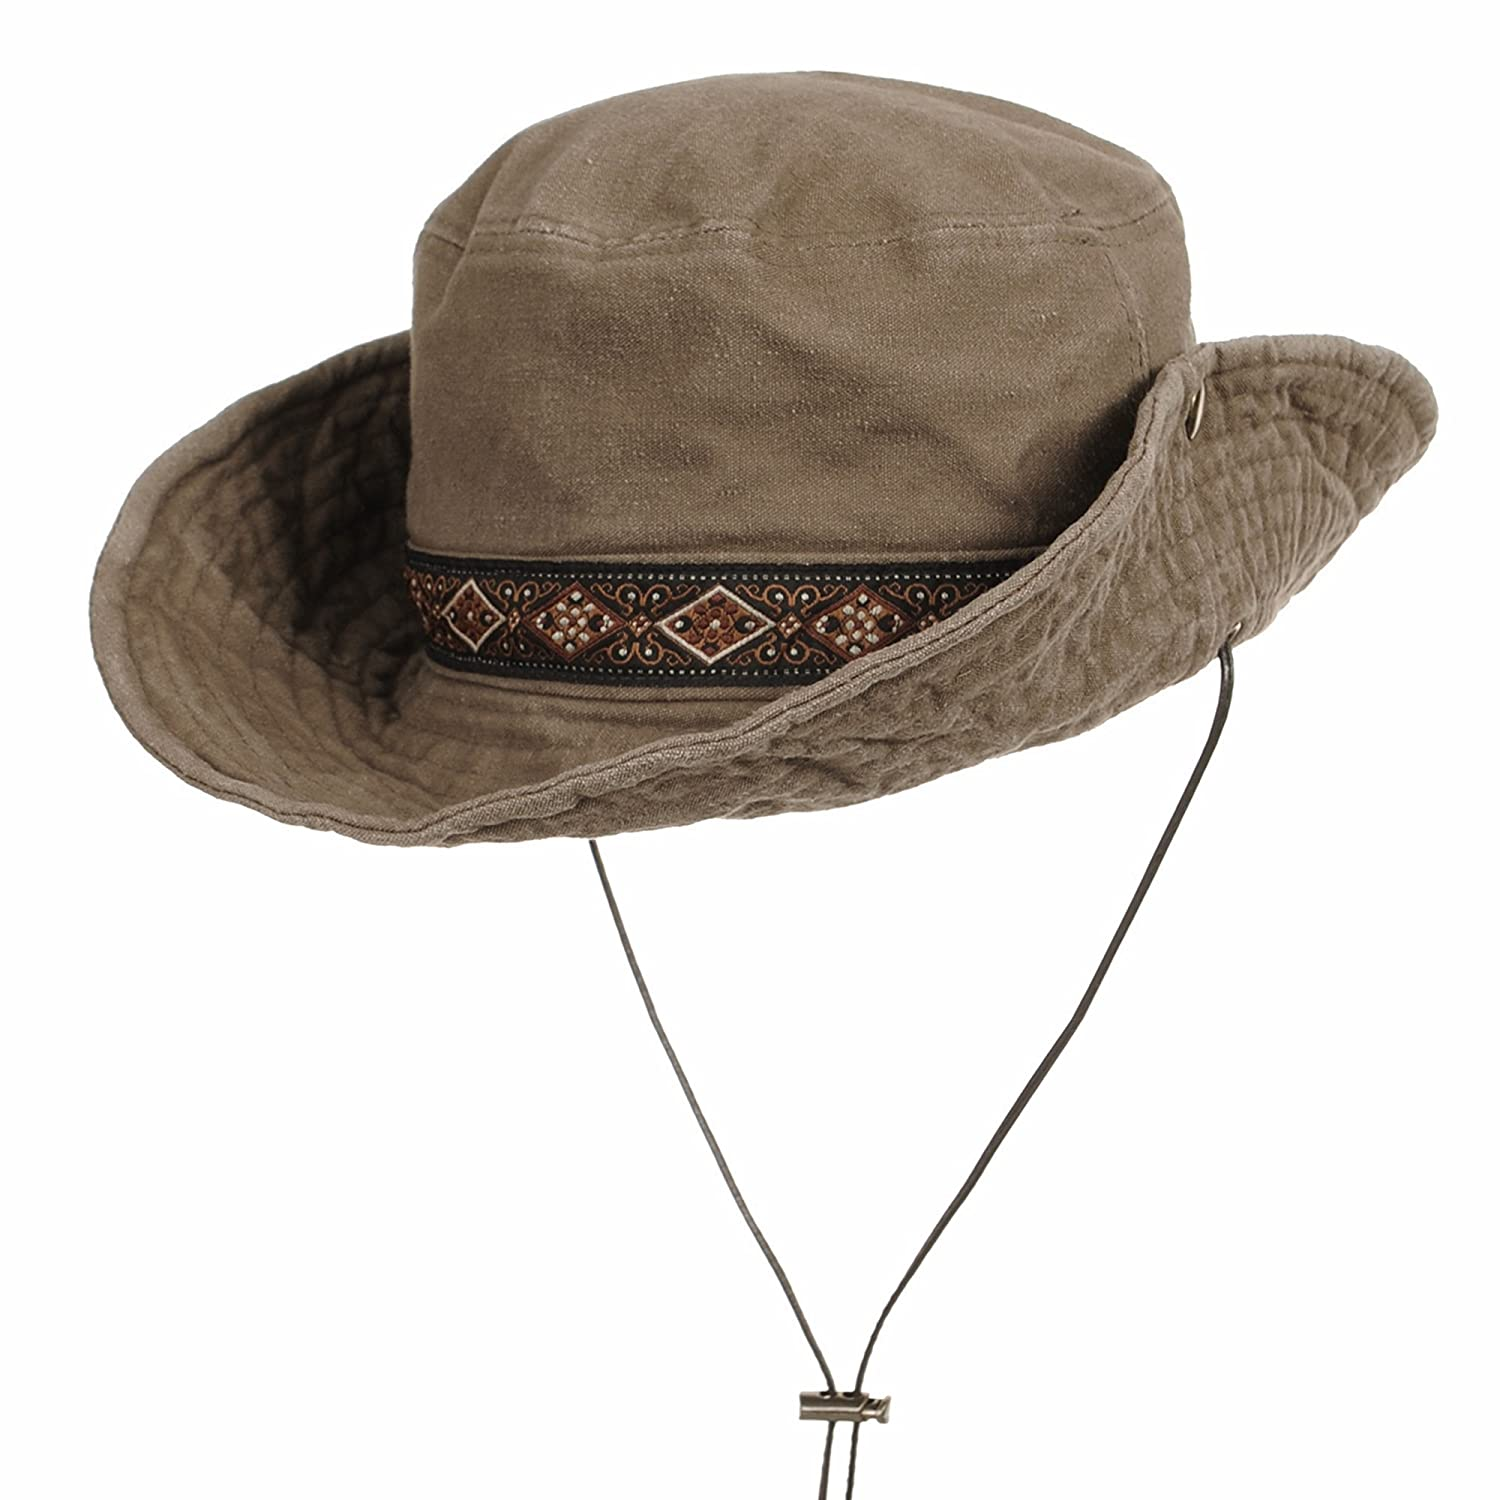 WITHMOONS Boonie Bush Hat Aztec Pattern Wide Brim Side Snap KR8752 KR8752Beige